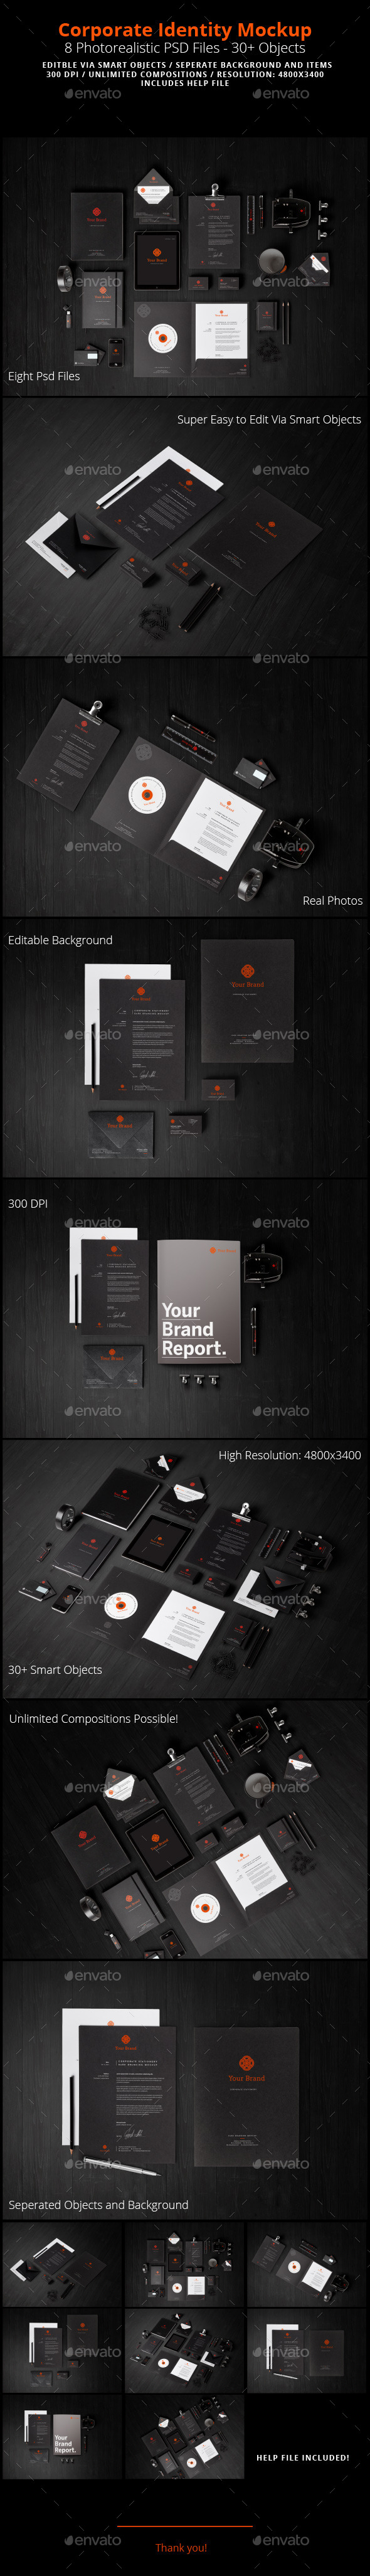 Corporate Identity Graphics & Vectors from GraphicRiver